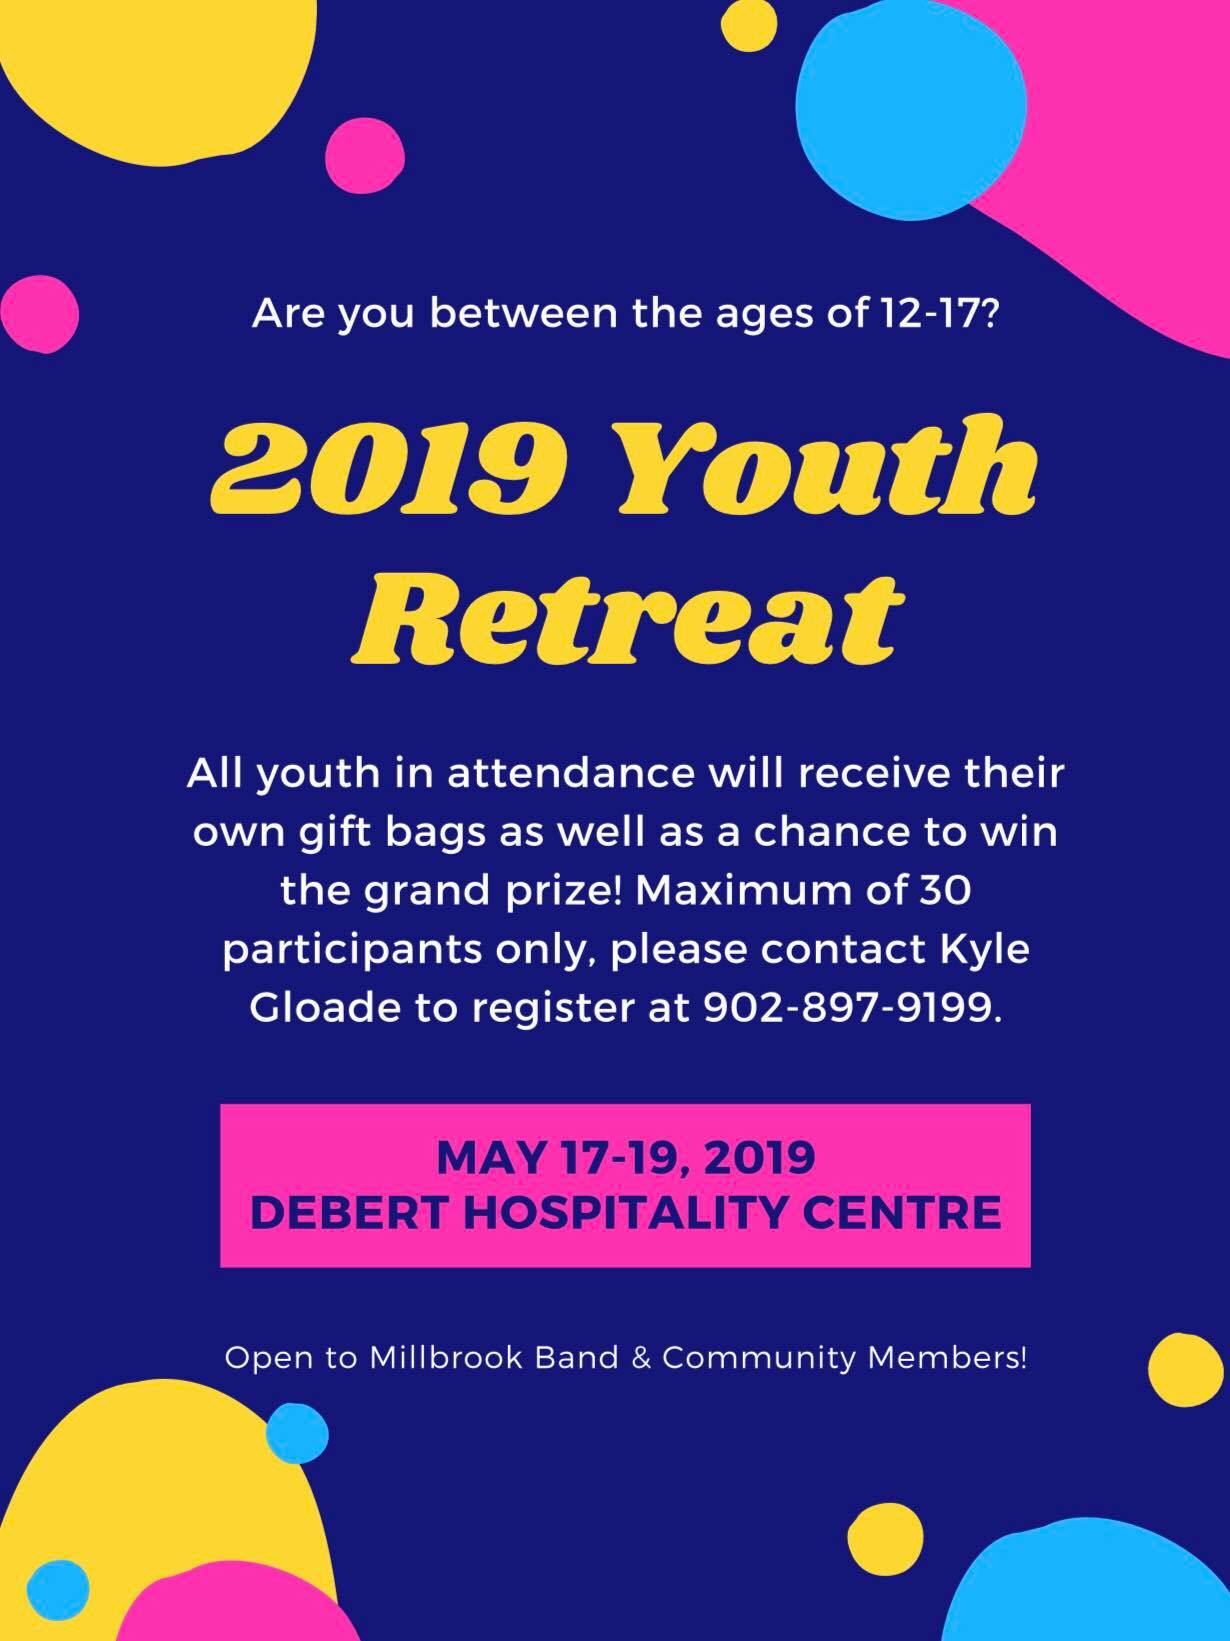 Youth Retreat 2019.jpg